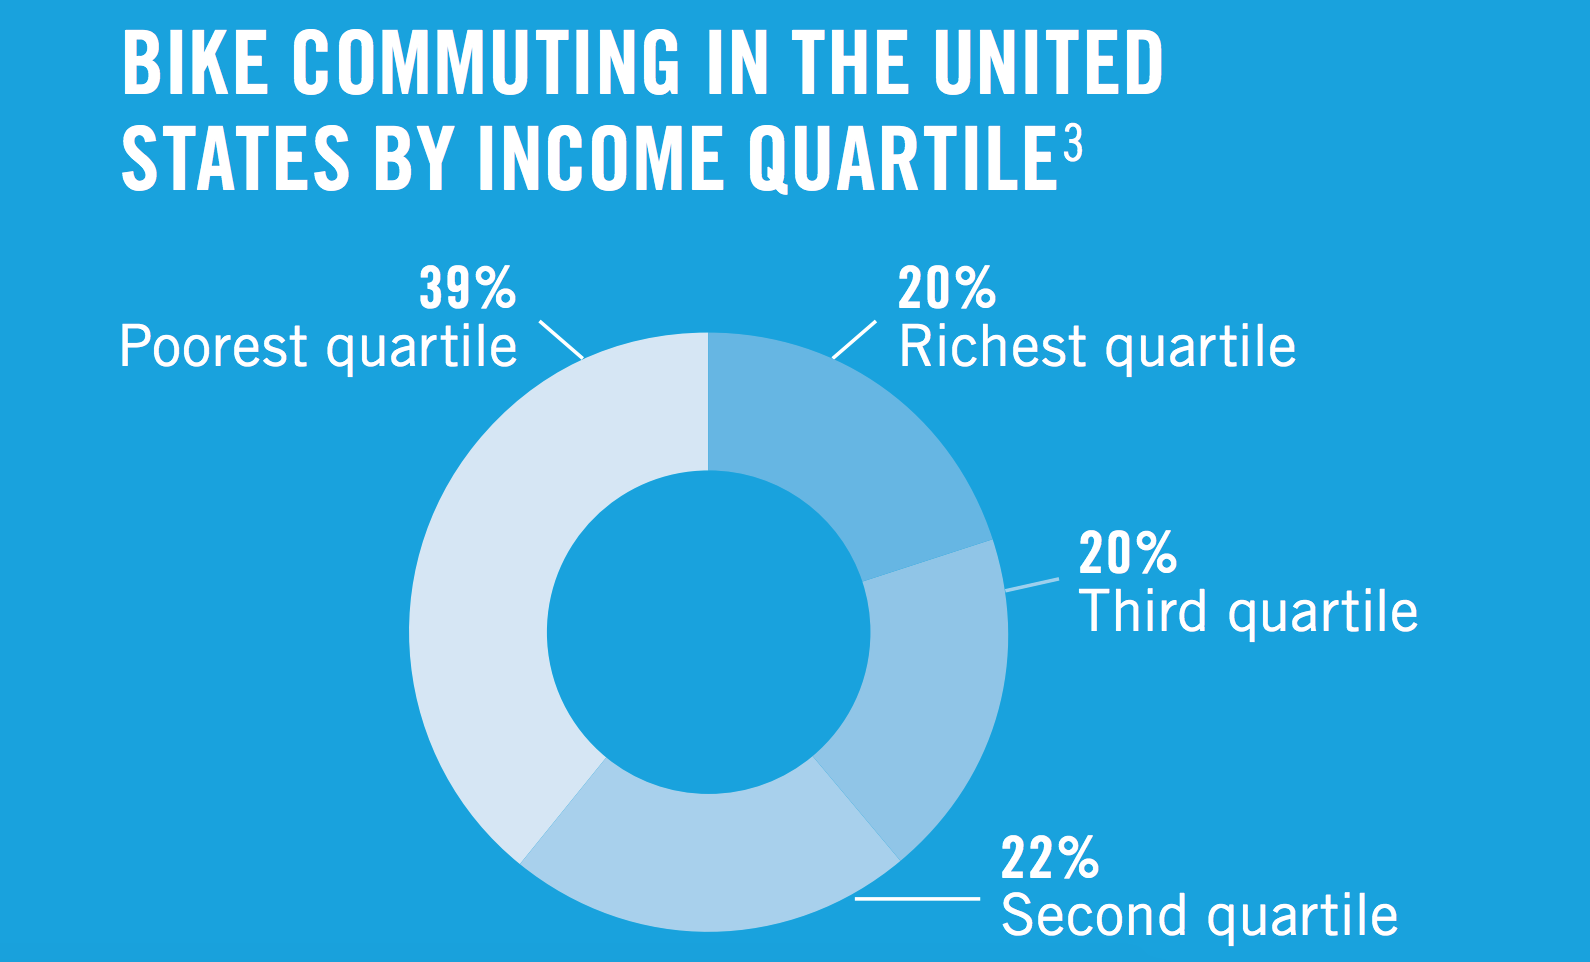 Bike commuting in the United States by income quartile